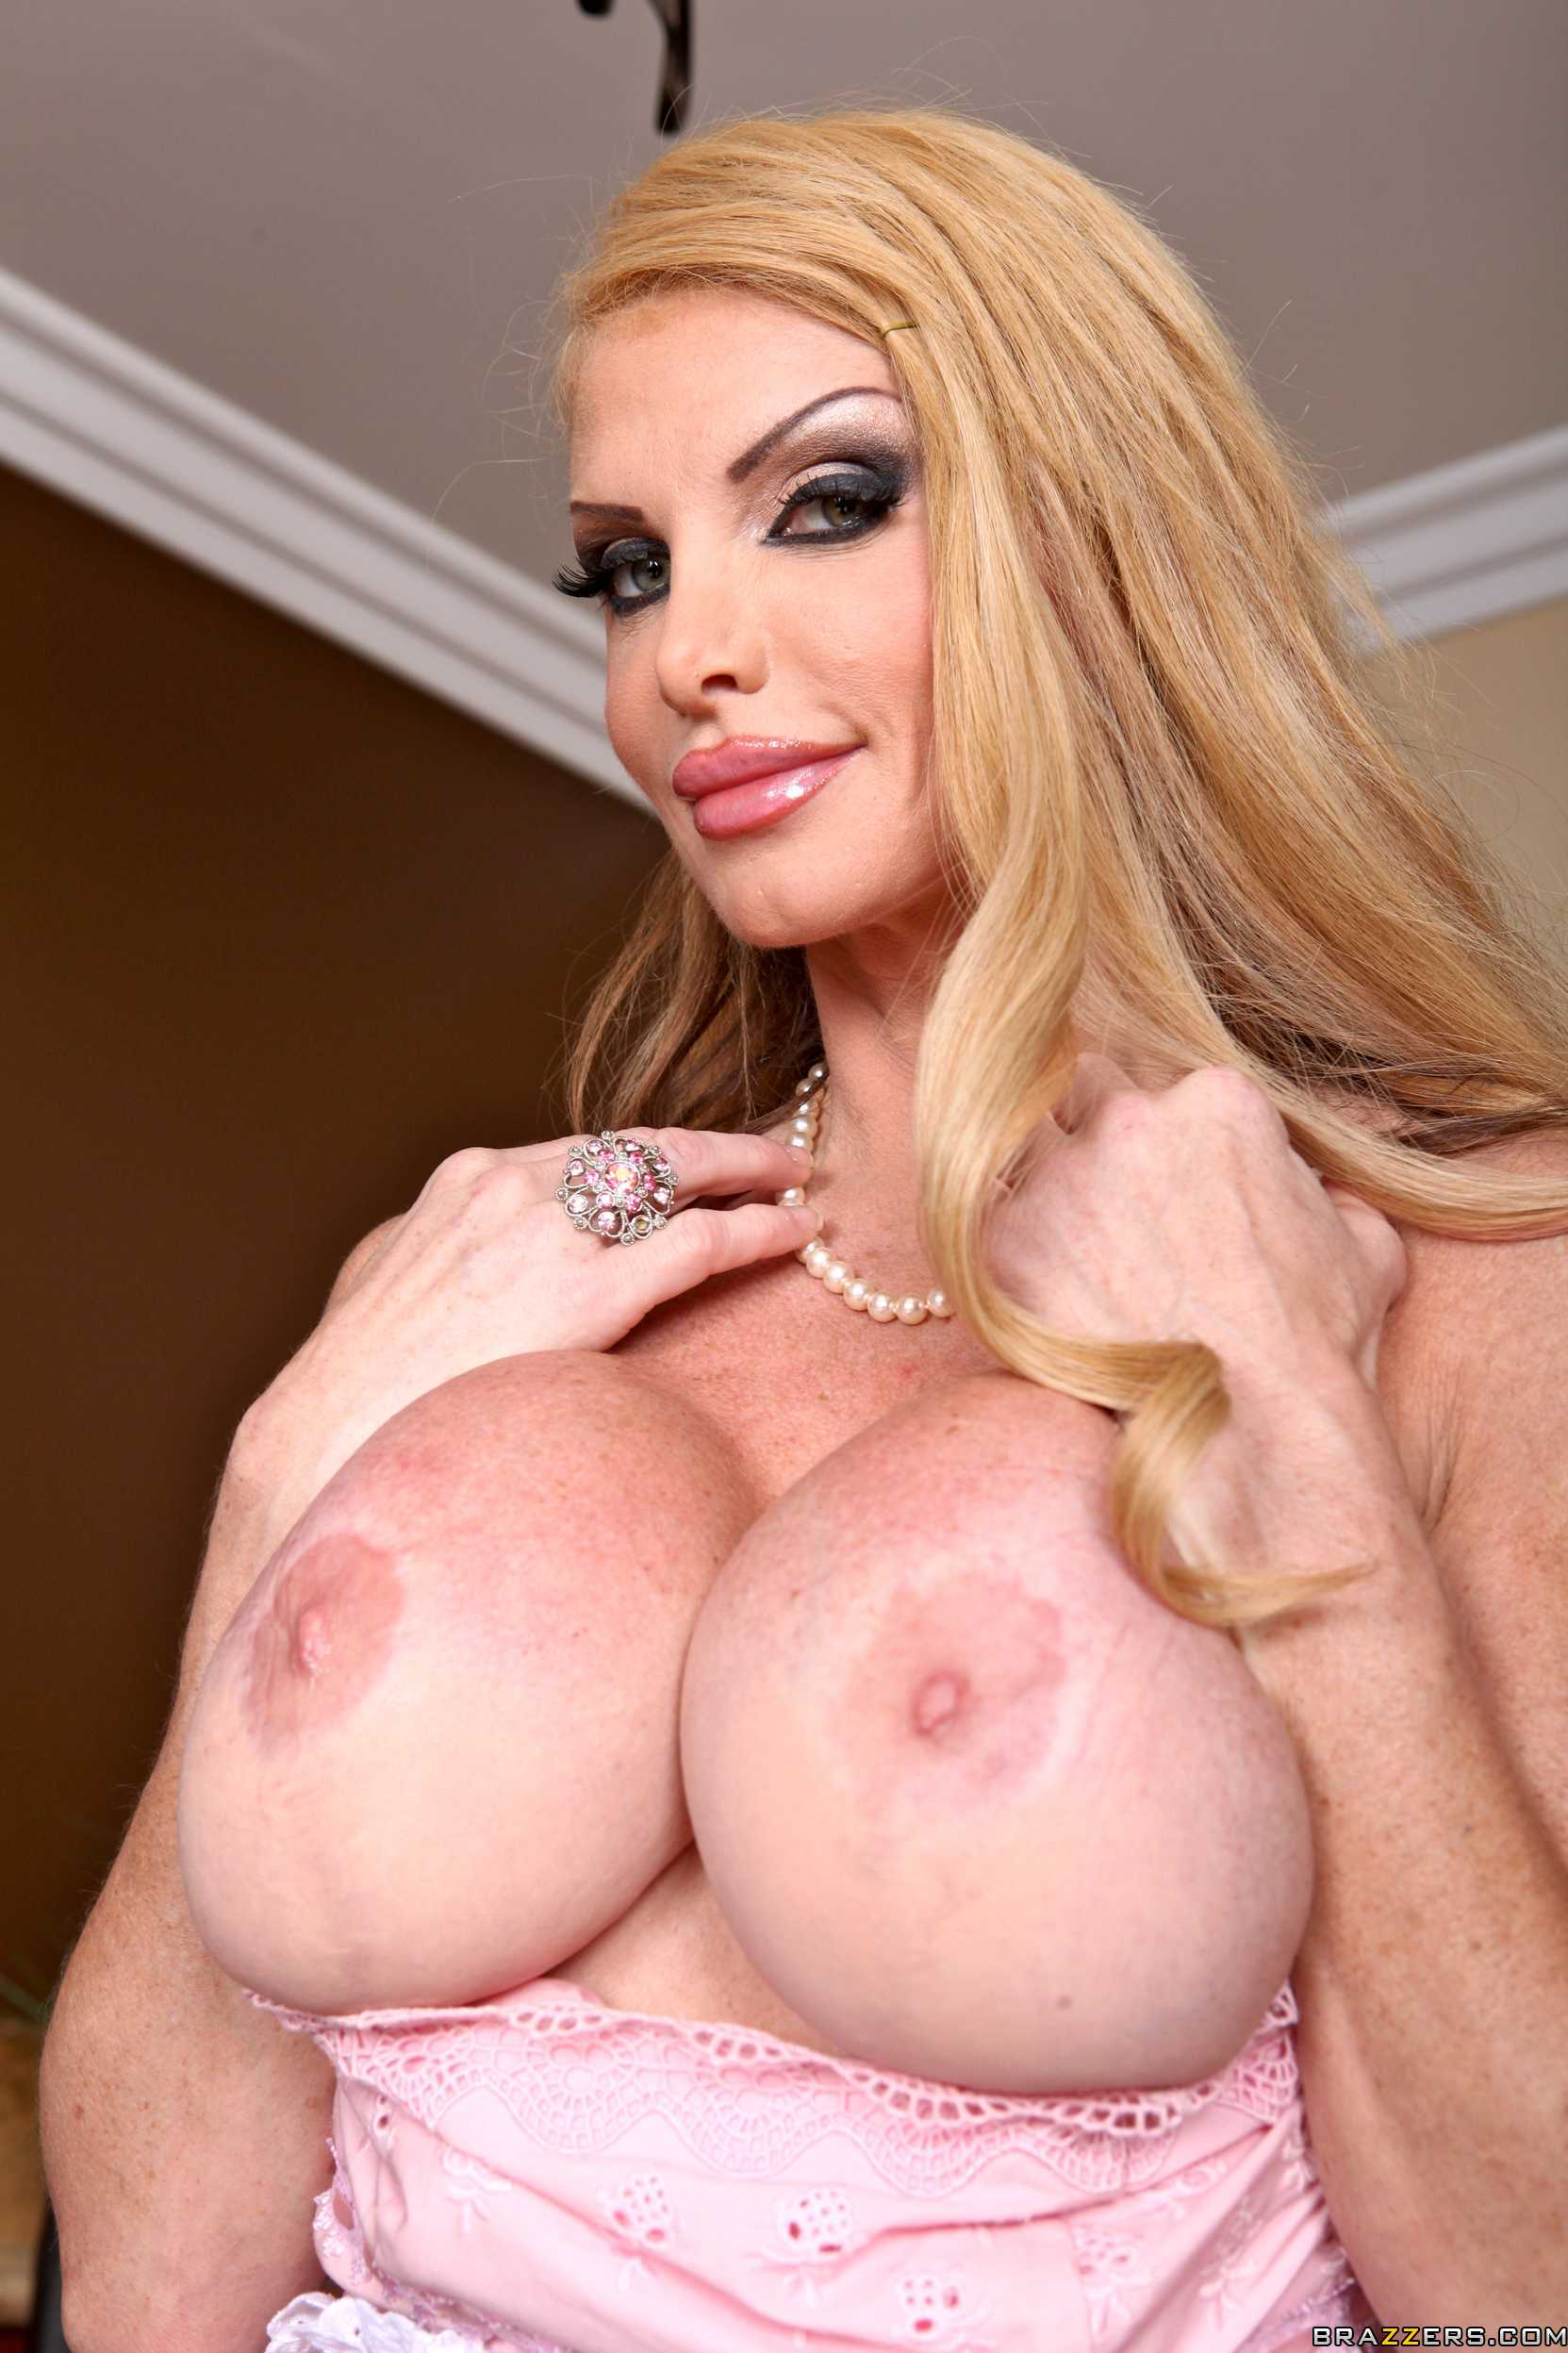 Taylor wane big tits are absolutely